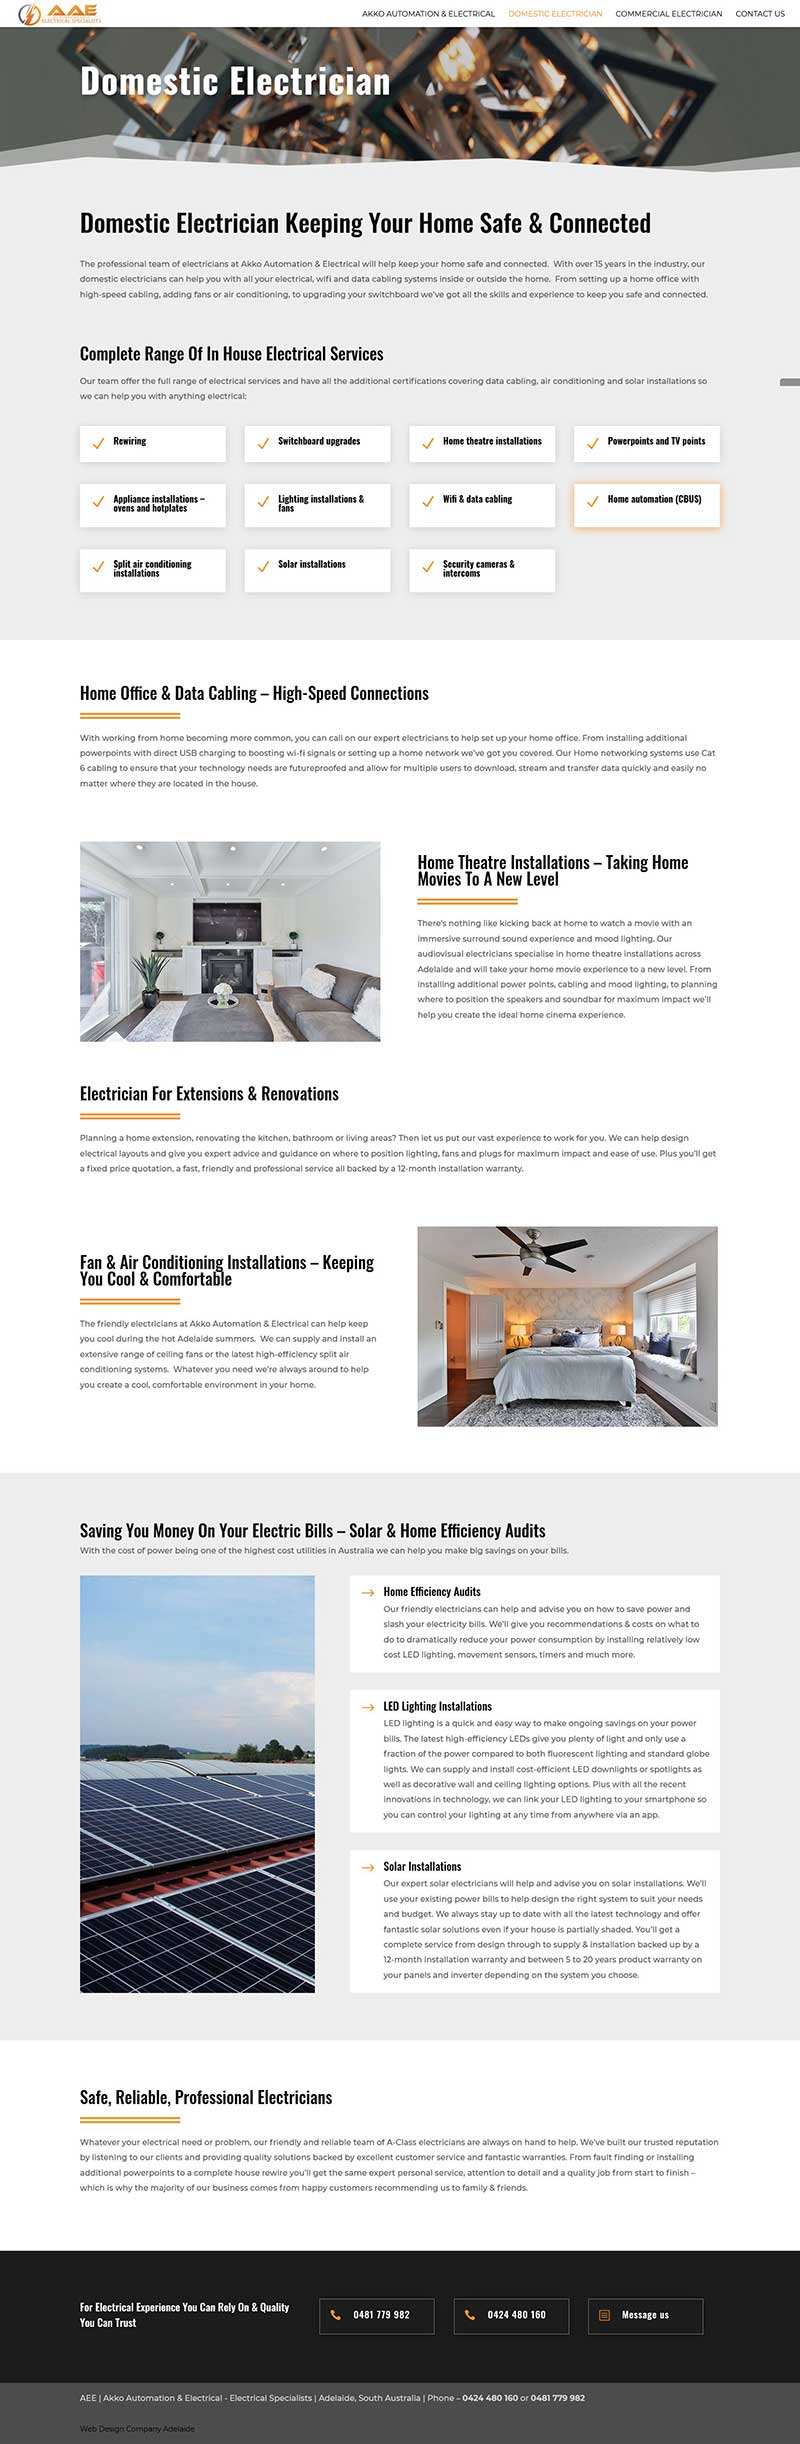 Website design for an electrical firm in Adelaide